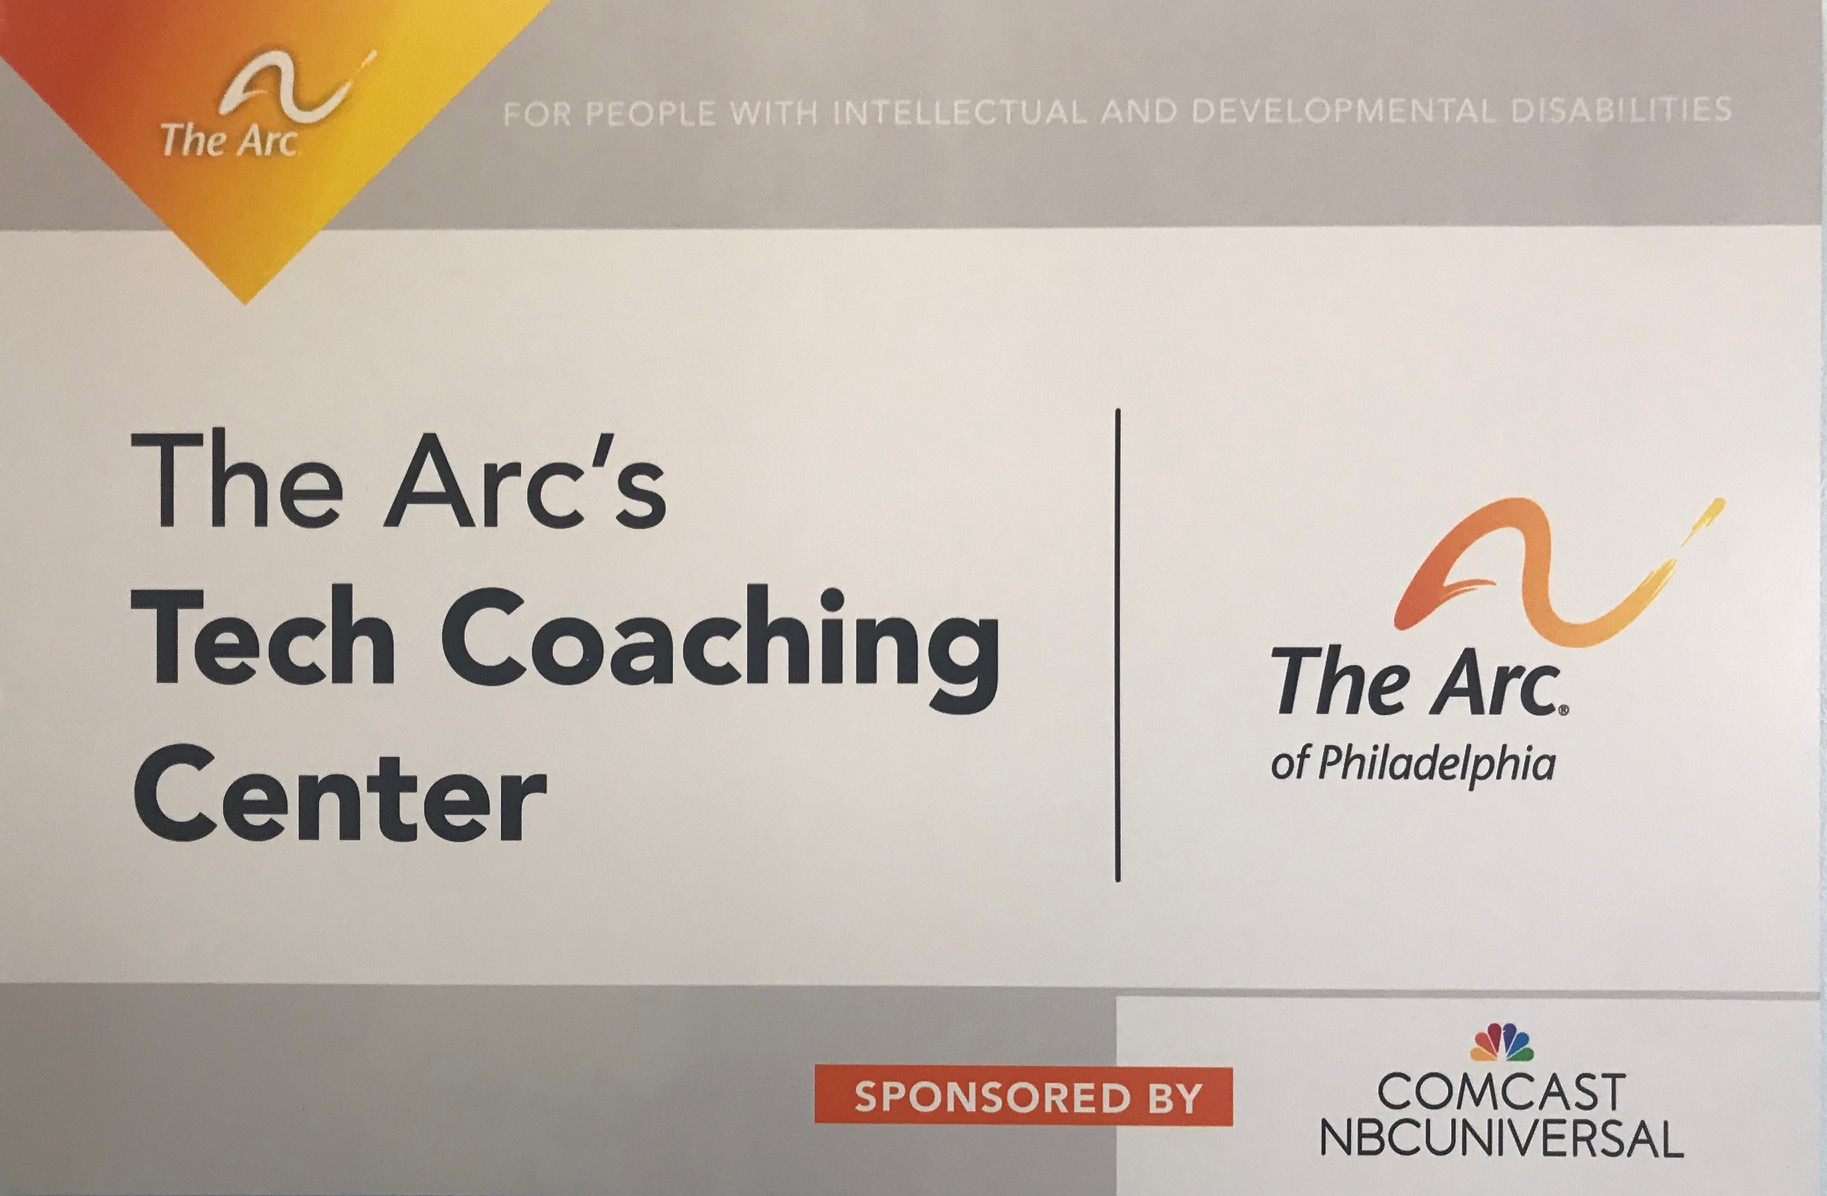 Partnership Between The Arc and Comcast Will Expand Technology Center